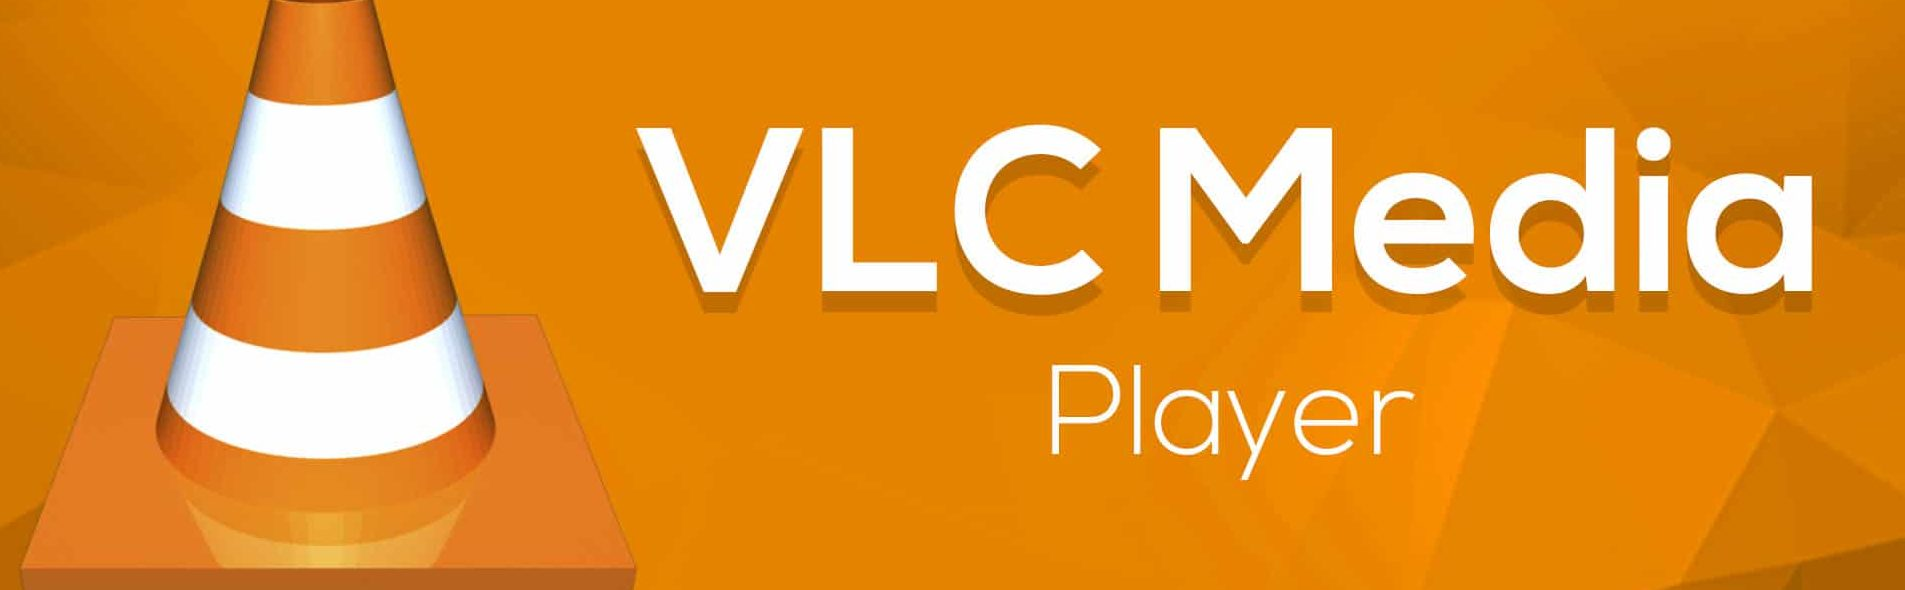 VLC Media Player - image